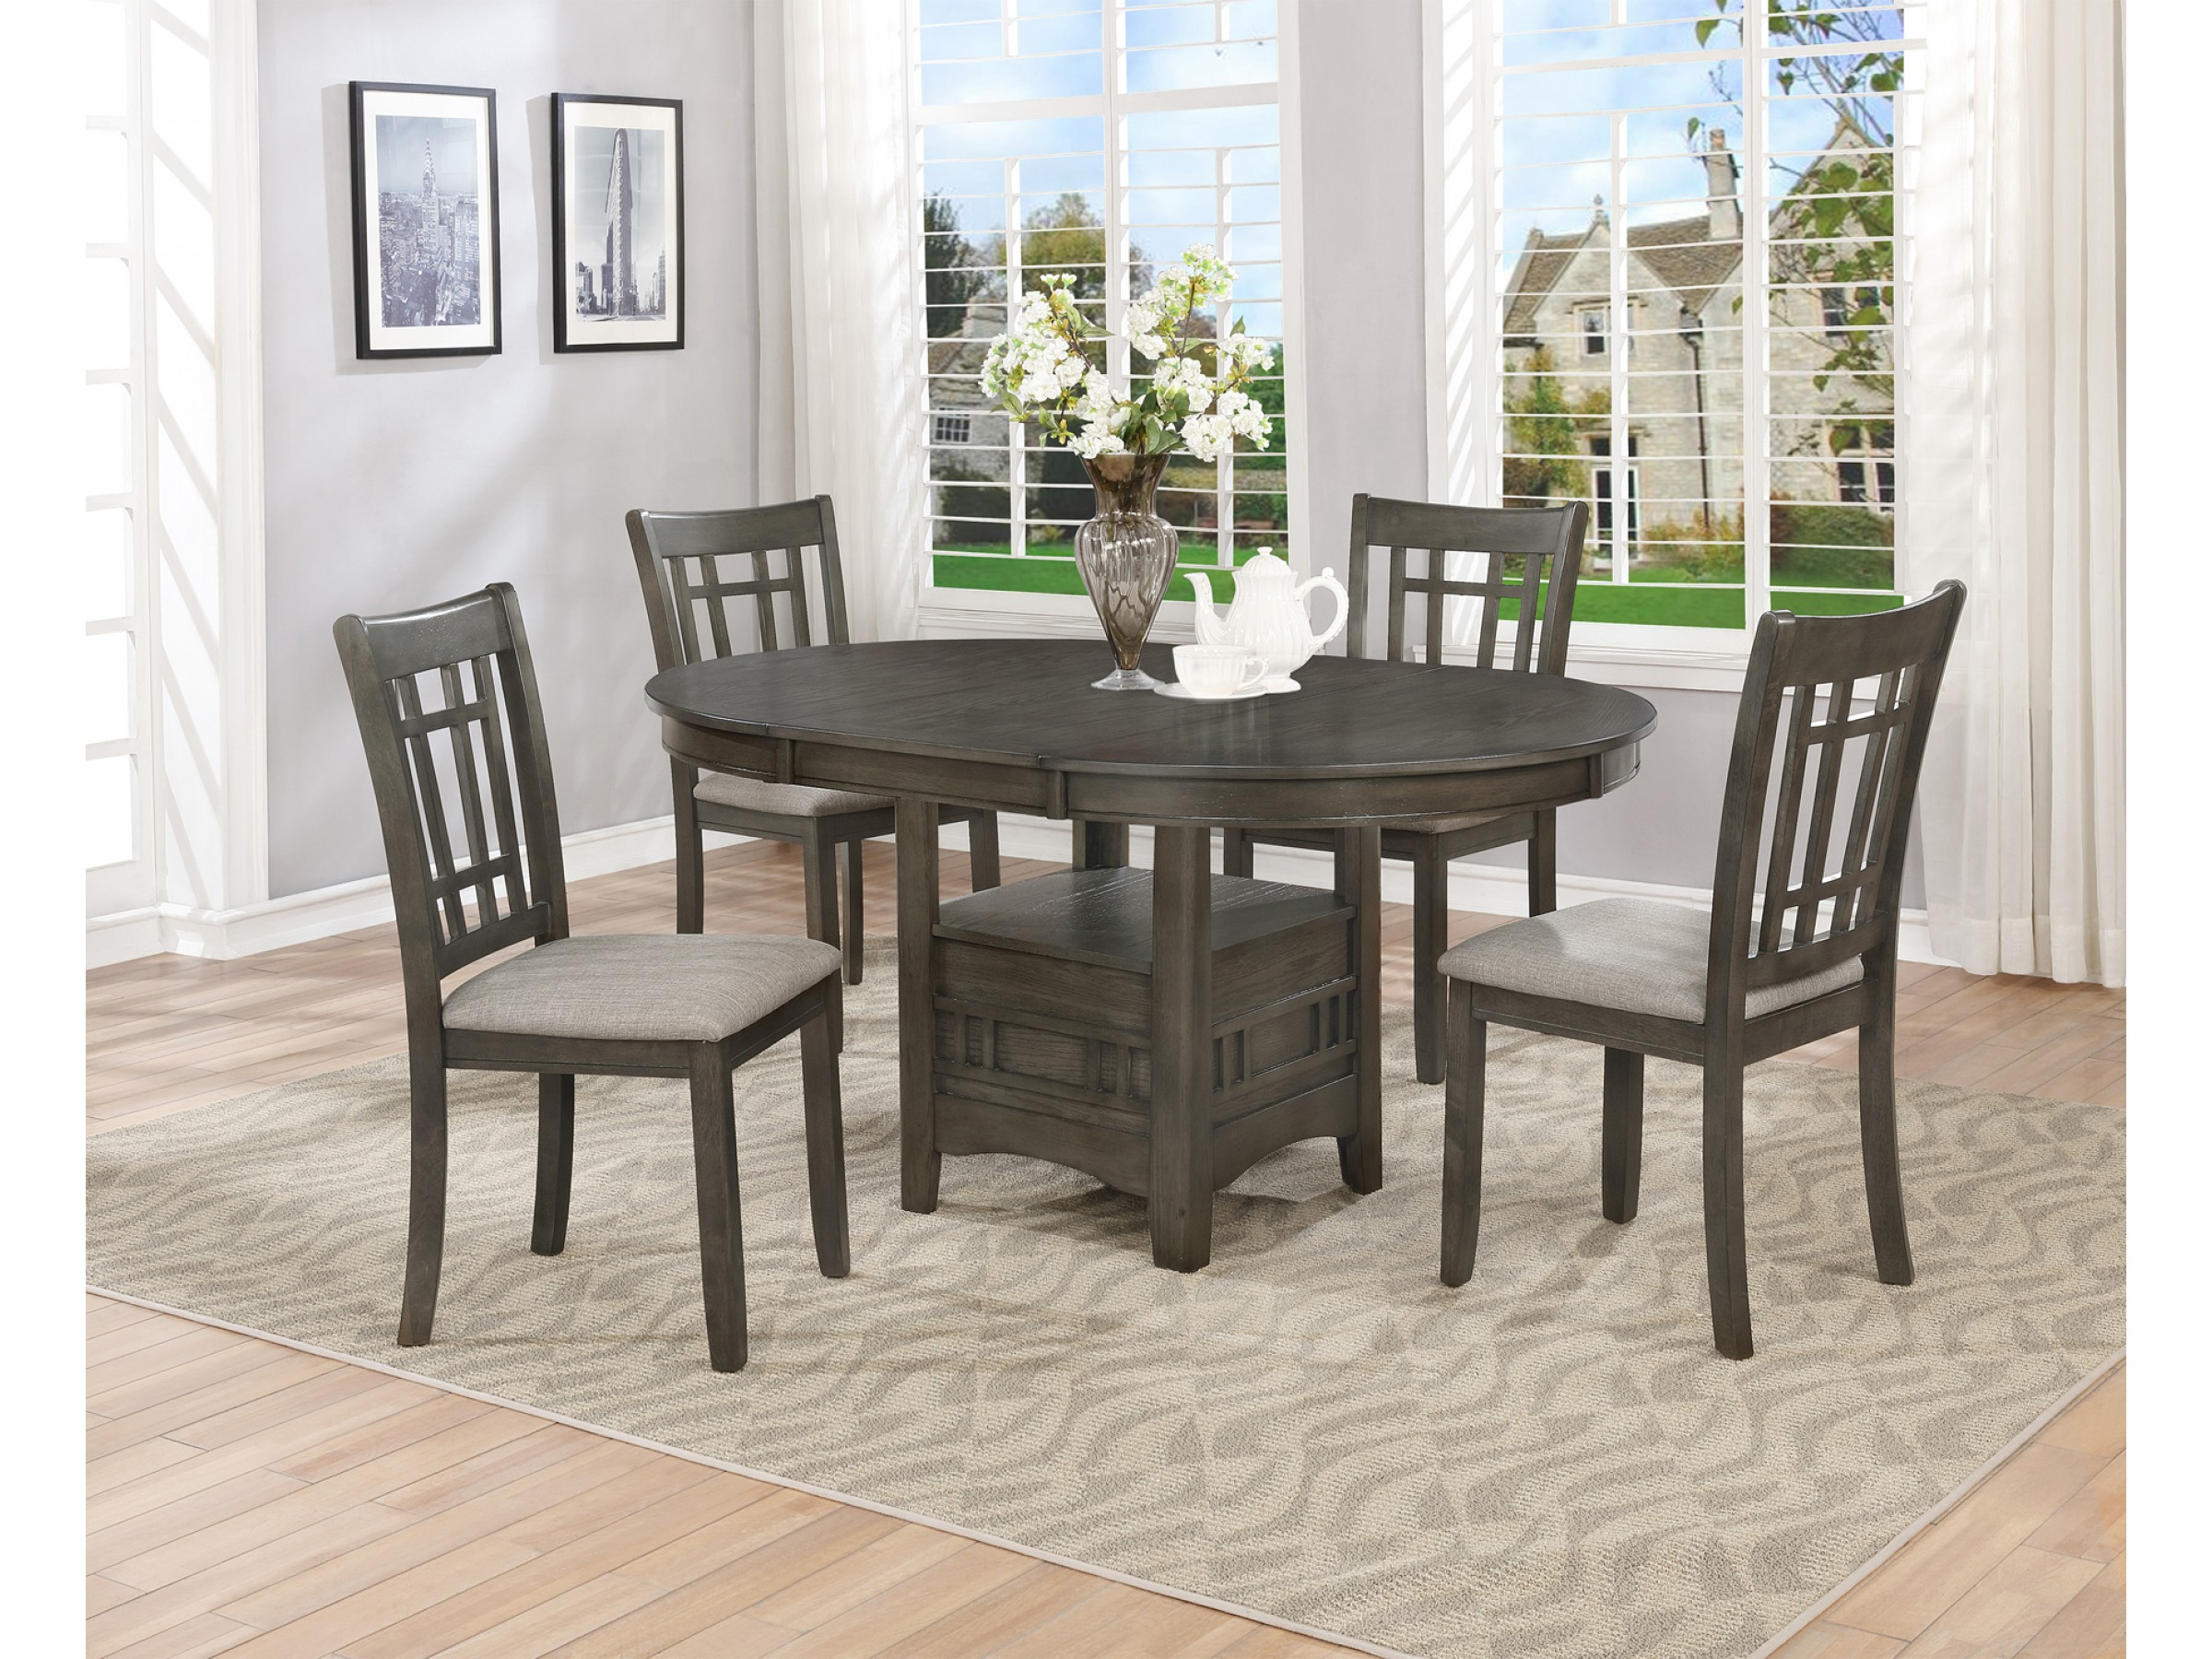 Outstanding Vegas 5 Pc Dining Table Set Uwap Interior Chair Design Uwaporg